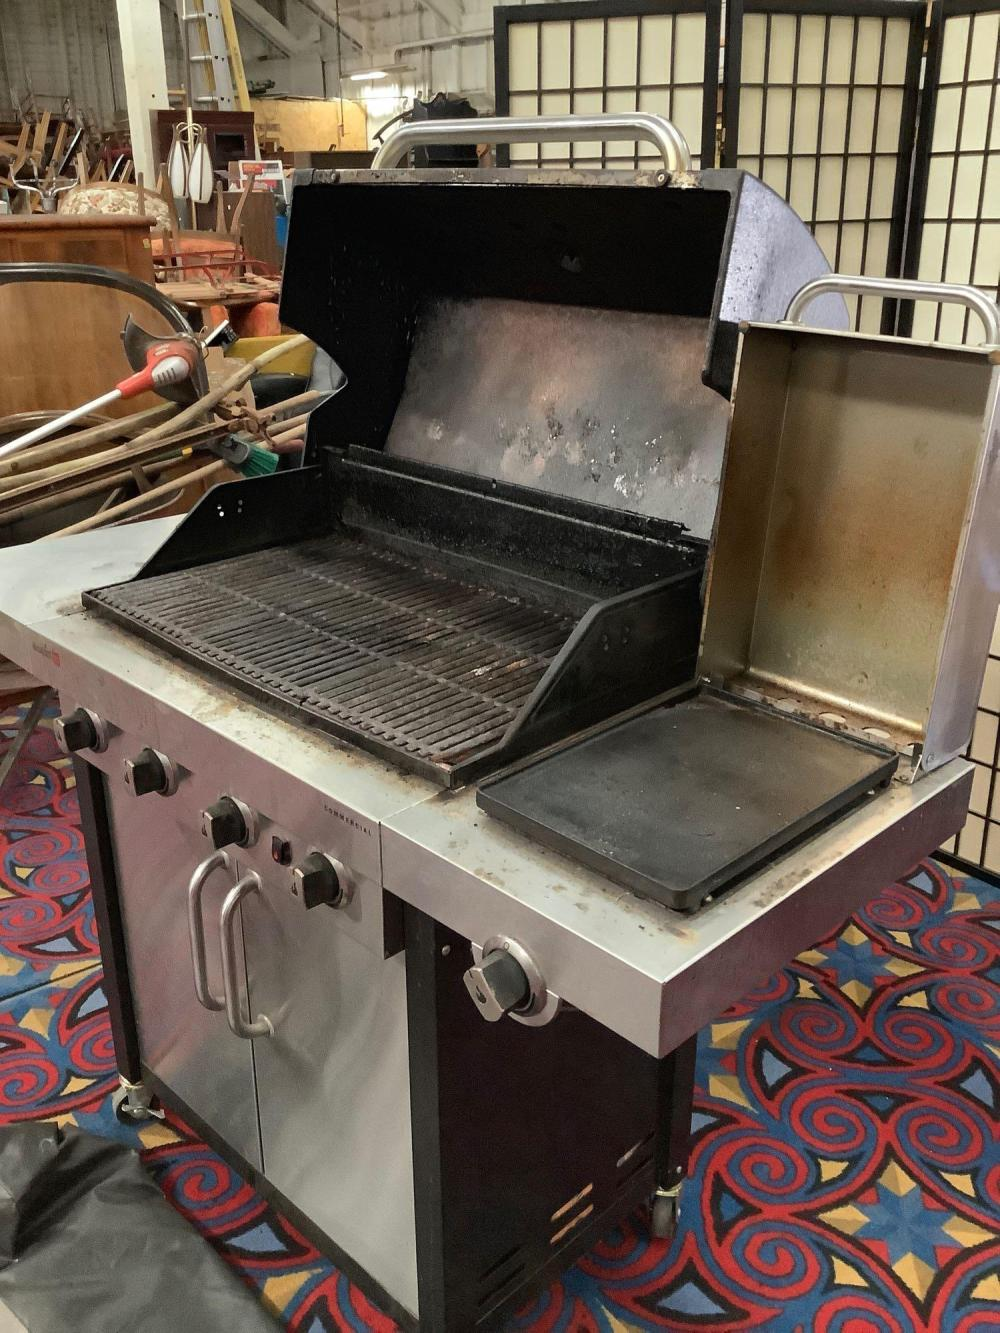 Lot 45: Char-Broil Tru Infrared BBQ gas grill with griddle, includes cover